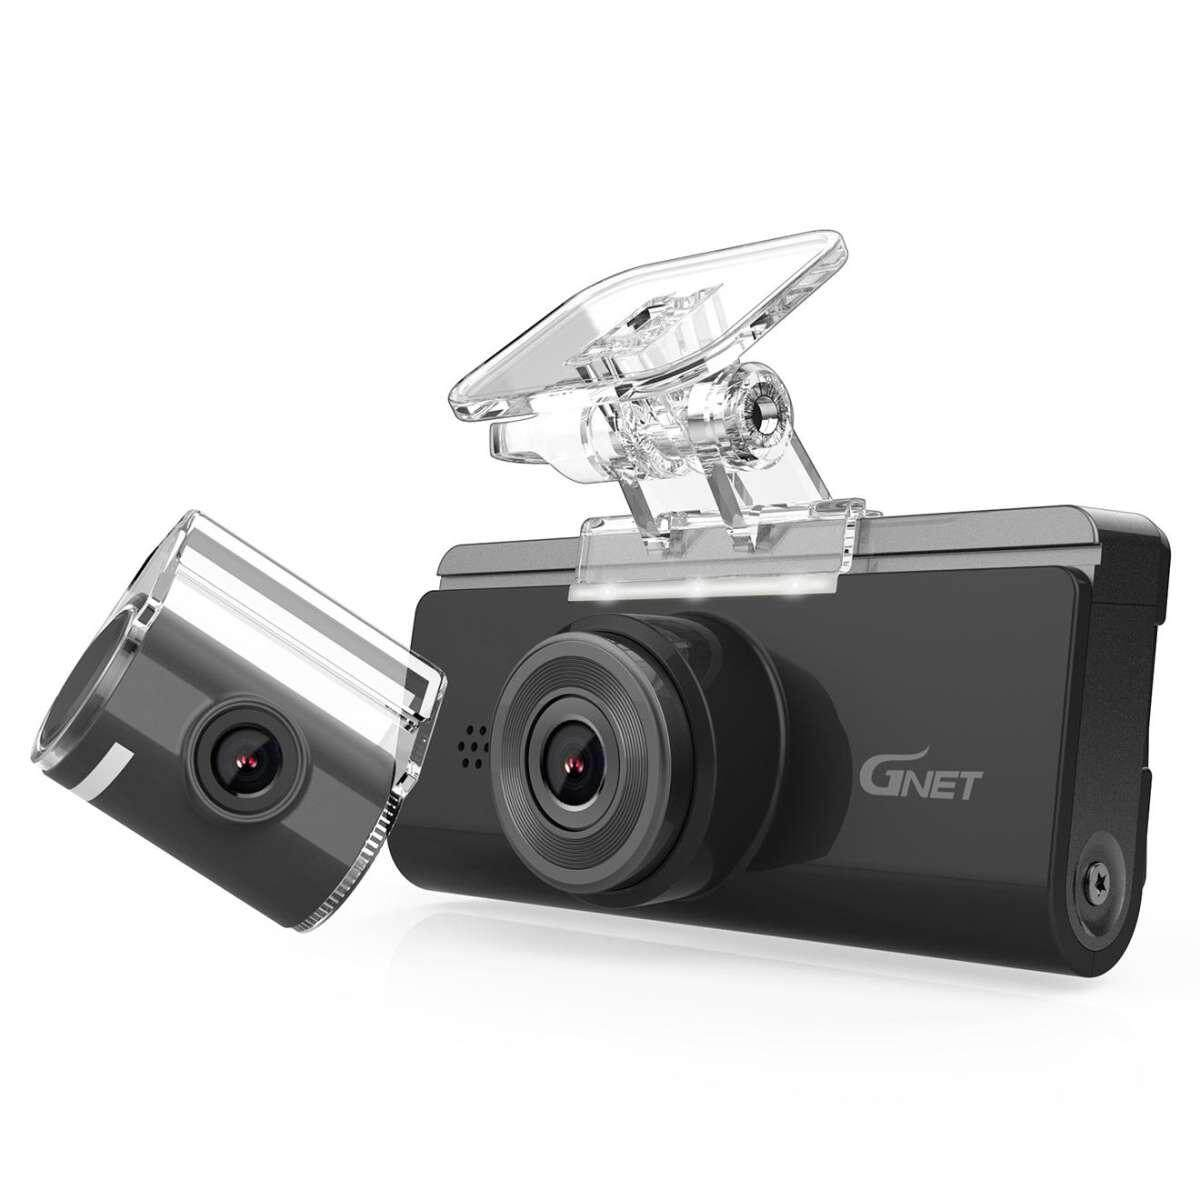 GNET N2 DVR DRIVING RECORDER 1080PNIGHT VISION DASH CAM HIGH QUALITY FRONT & REAR VIEW FULL HD RECORDINGS